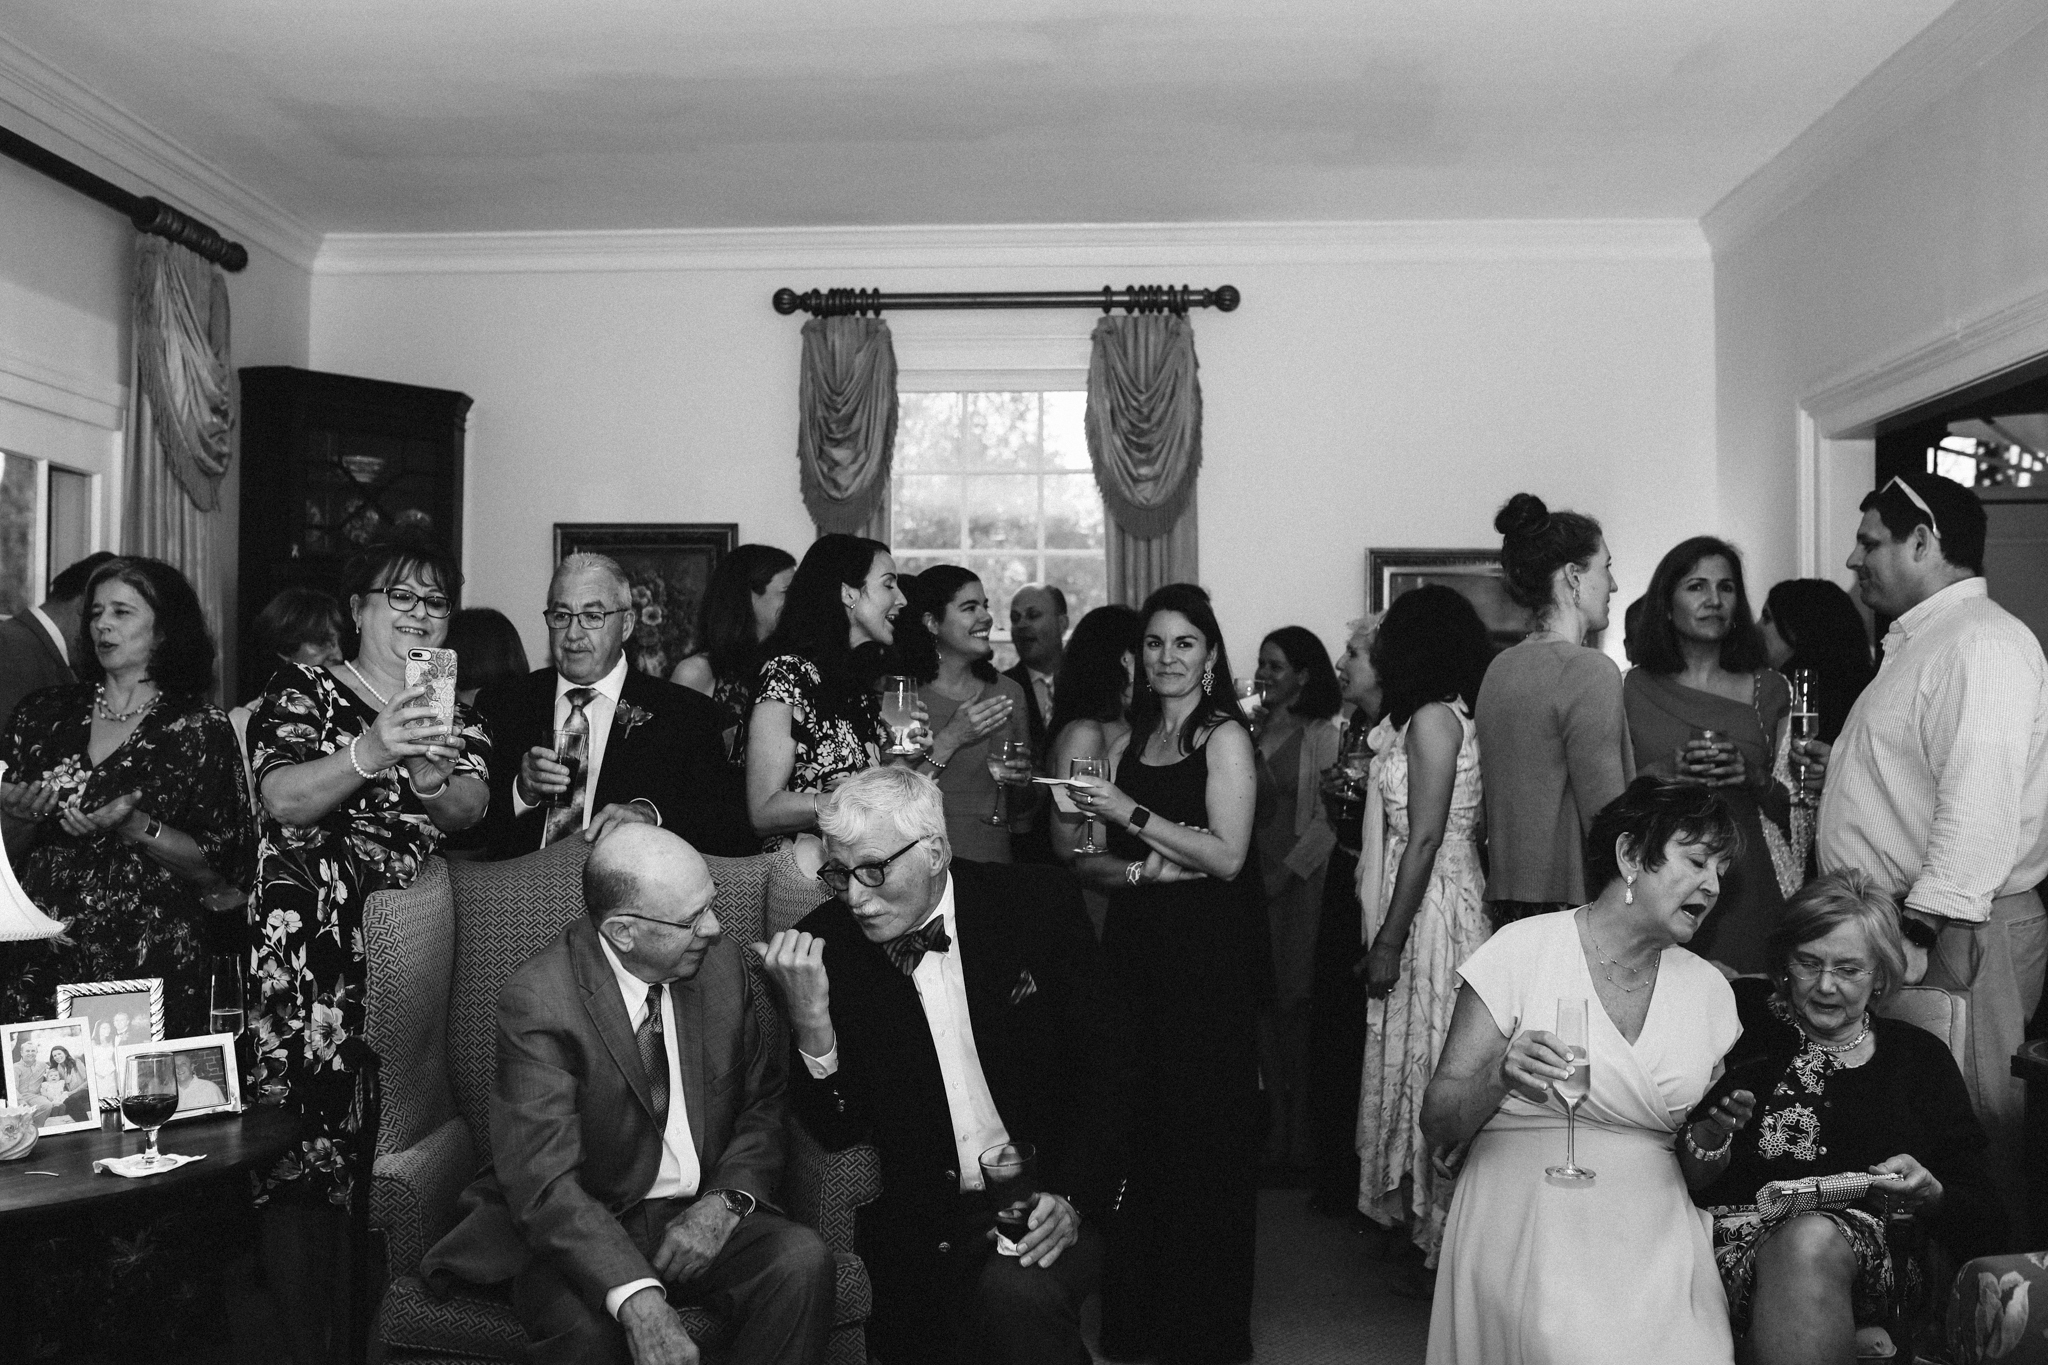 cook_wedding_richmond_virginia_rebecca_burt_photography-102.jpg